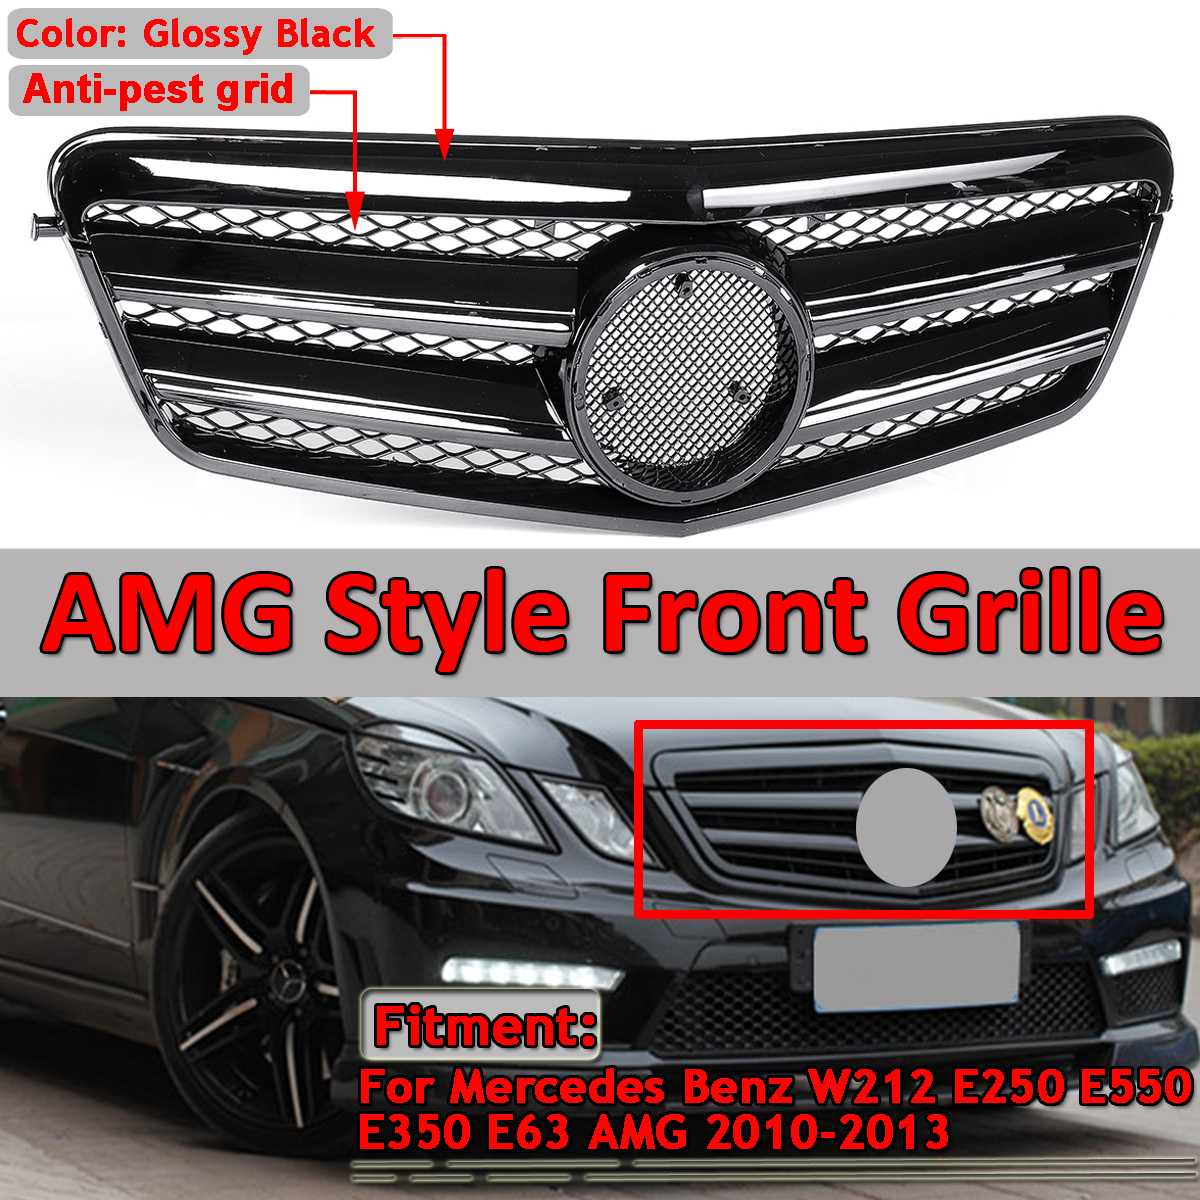 W212 GTR Style Car Front Bumper Grill Grille For Mercedes For Benz E250 E550 E350 E63 For AMG 2010-2013 Racing Grills no emblemW212 GTR Style Car Front Bumper Grill Grille For Mercedes For Benz E250 E550 E350 E63 For AMG 2010-2013 Racing Grills no emblem